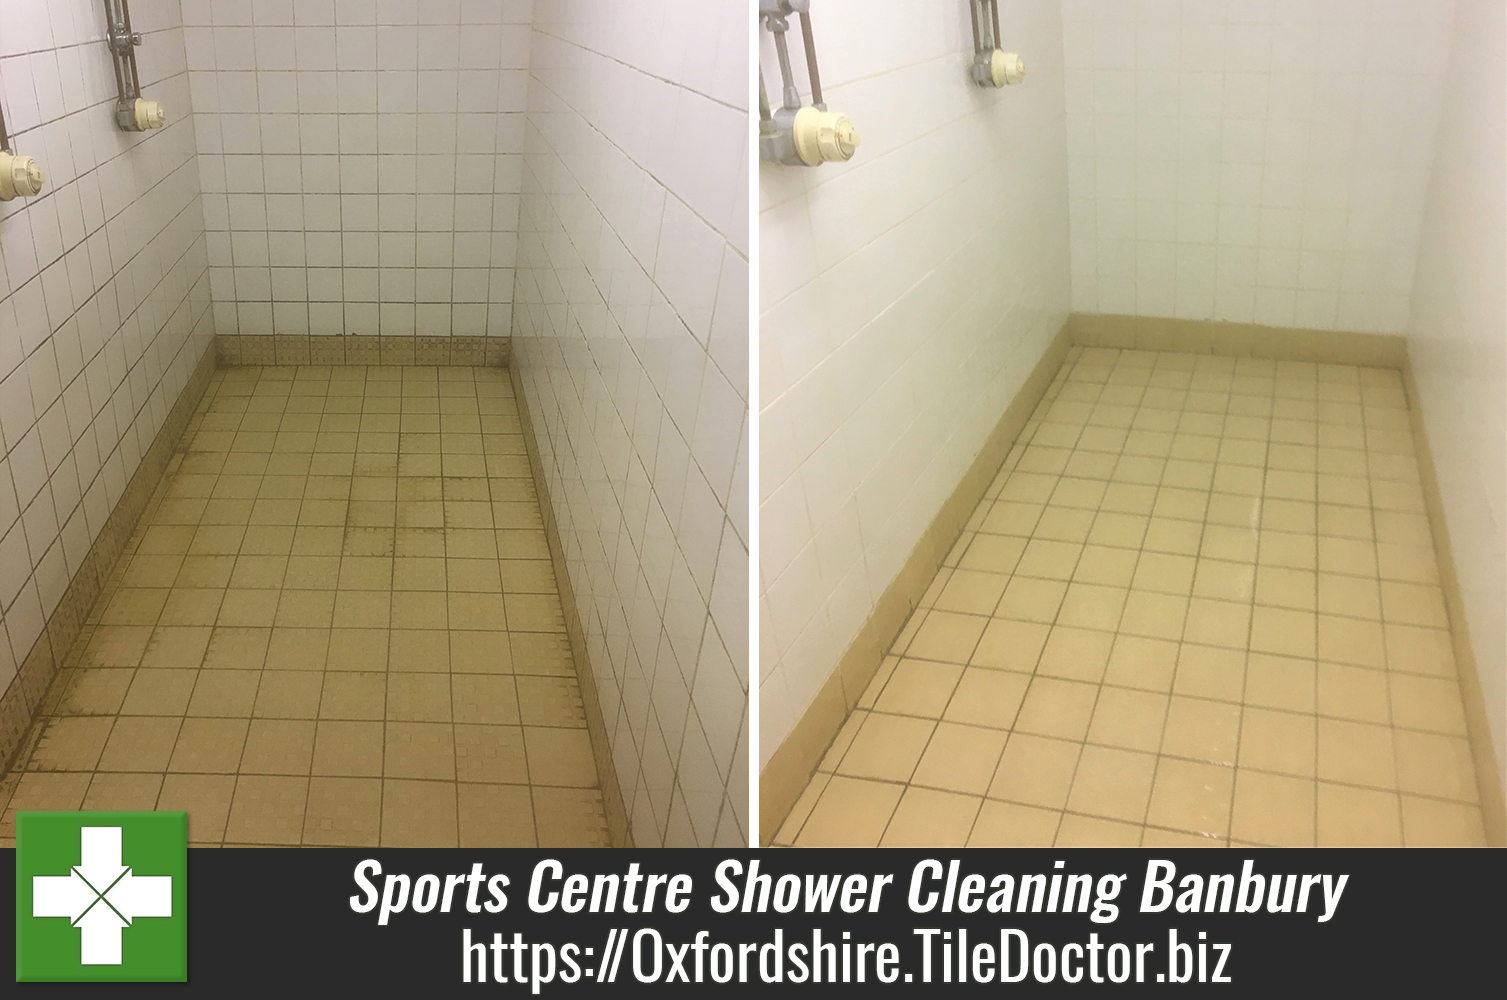 Deep Cleaning Anti-Slip Ceramic Tiles at Banbury Sports Centre